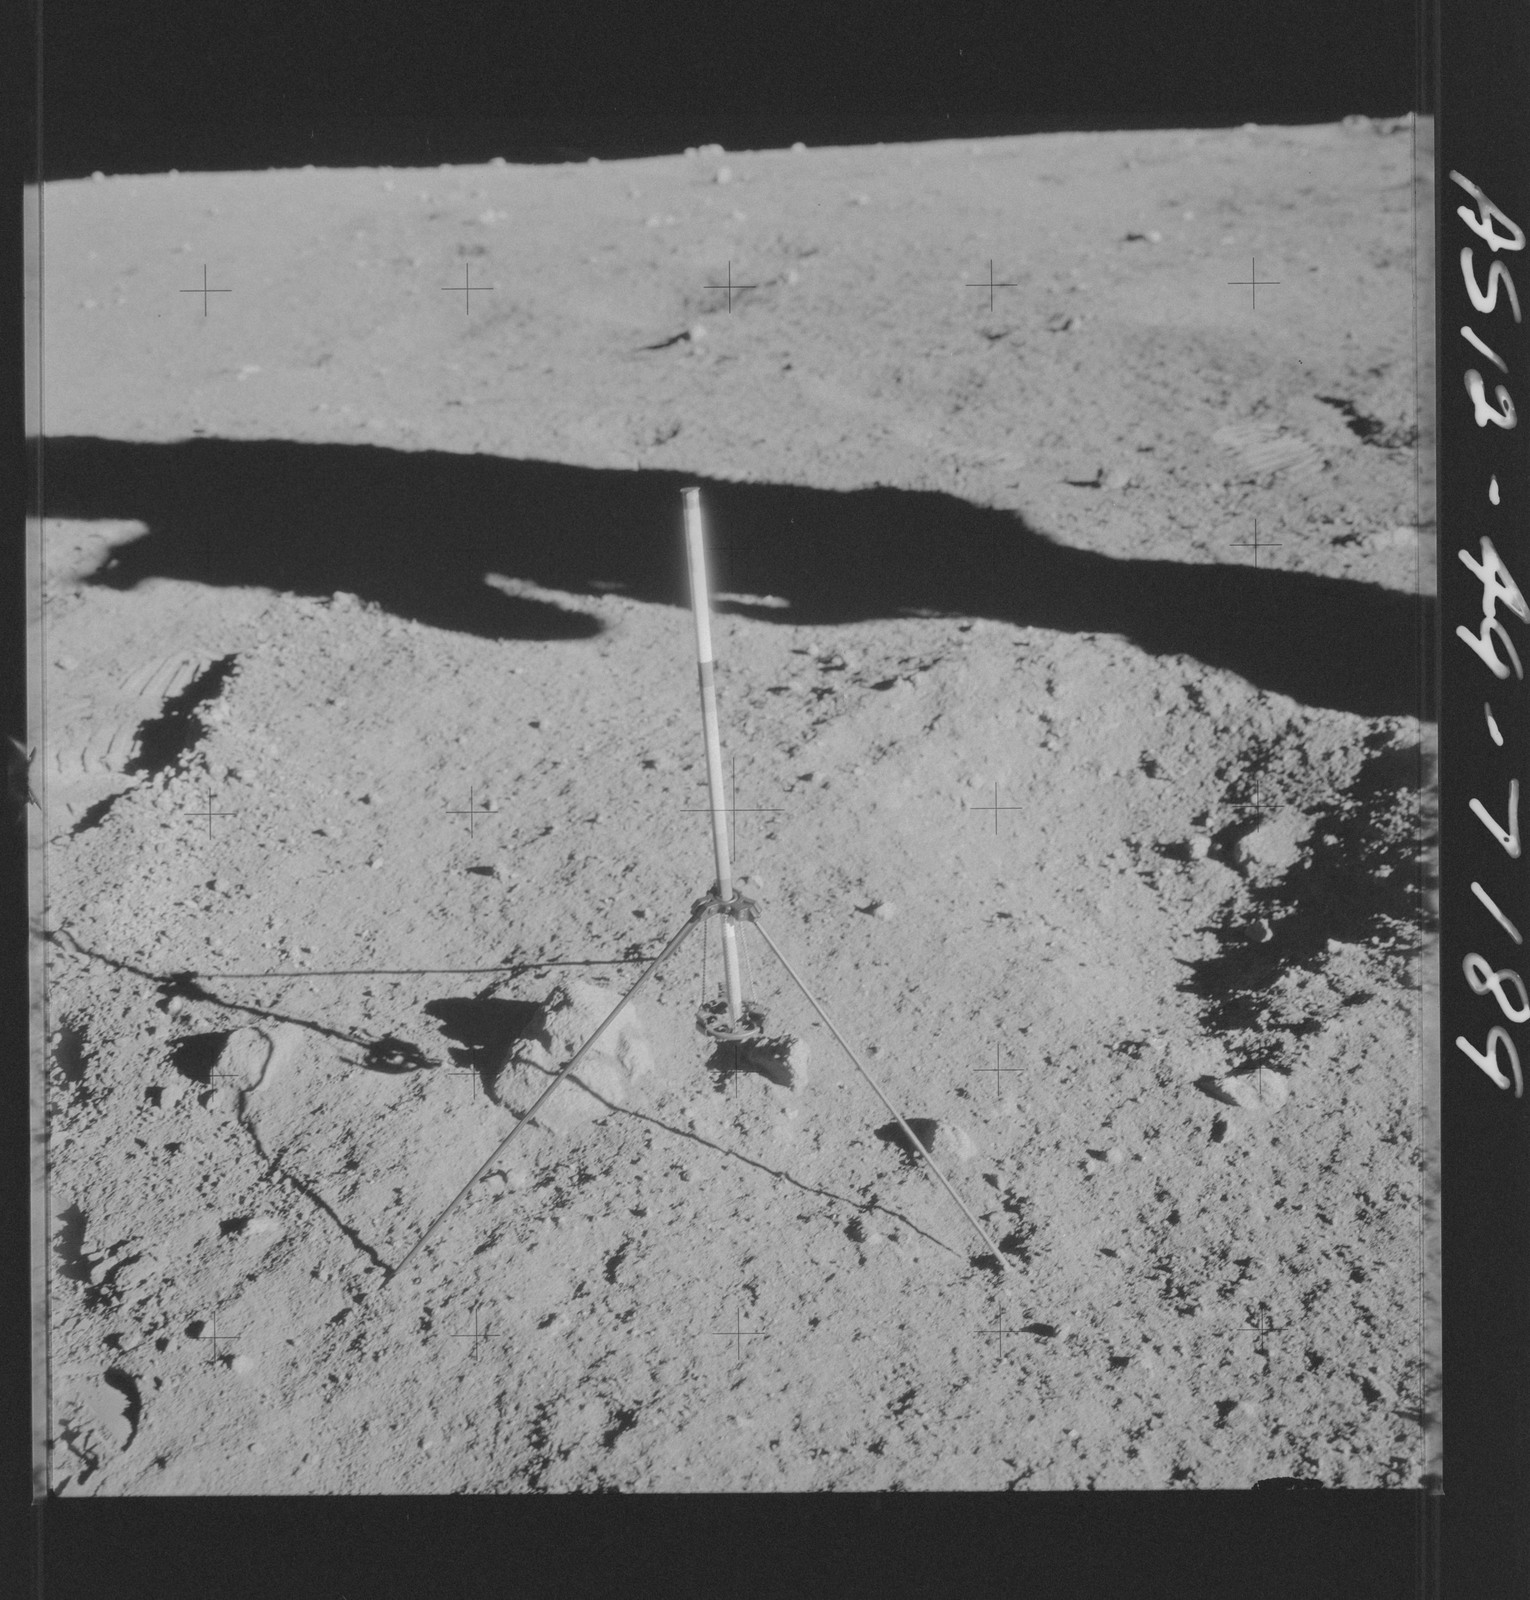 AS12-49-7189 - Apollo 12 - Apollo 12 Mission image  - View of a tri-pod holder for a core sampler on the lunar surface